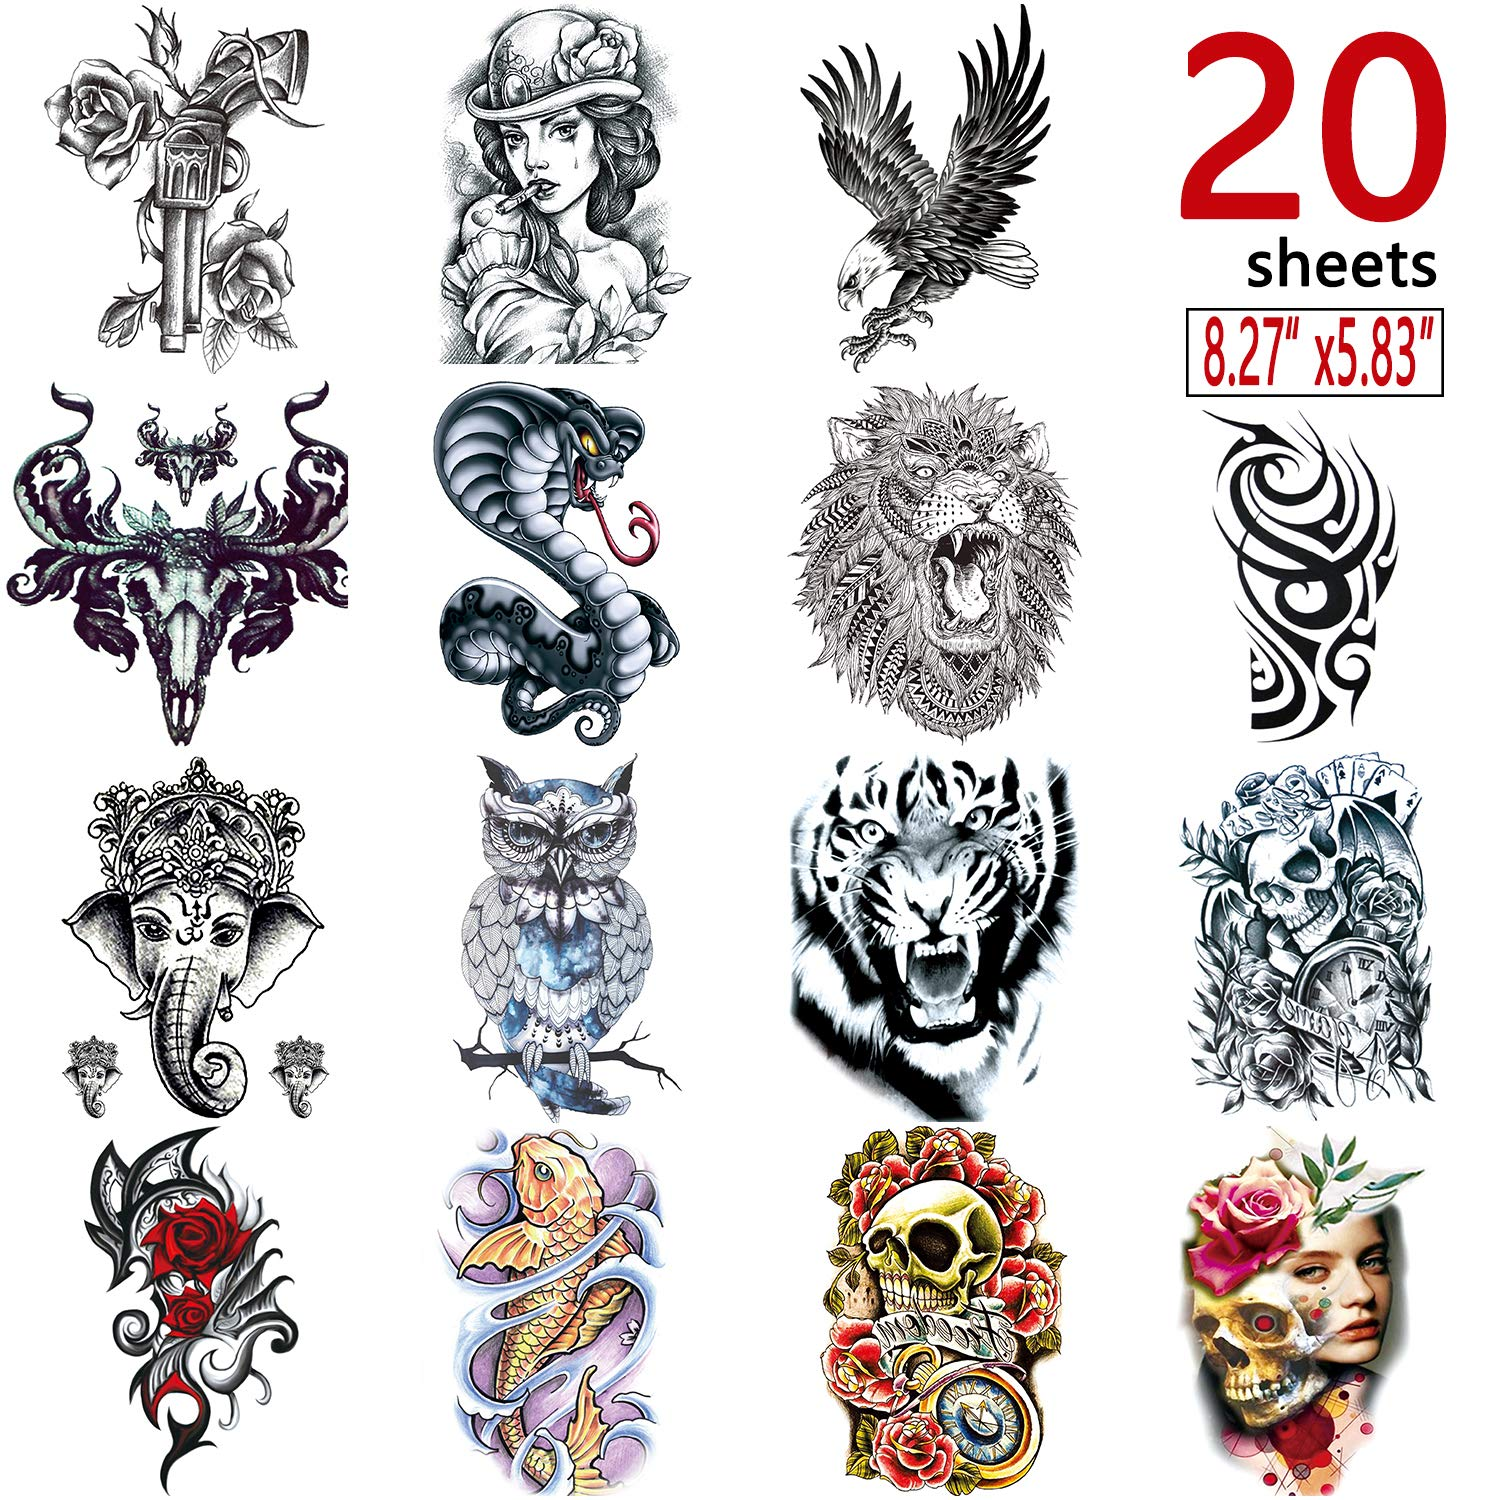 Amazon com 20 sheets large temporary tattoos stickers fake body arm chest shoulder tattoos for men and women(21cm x 14 8cm beauty